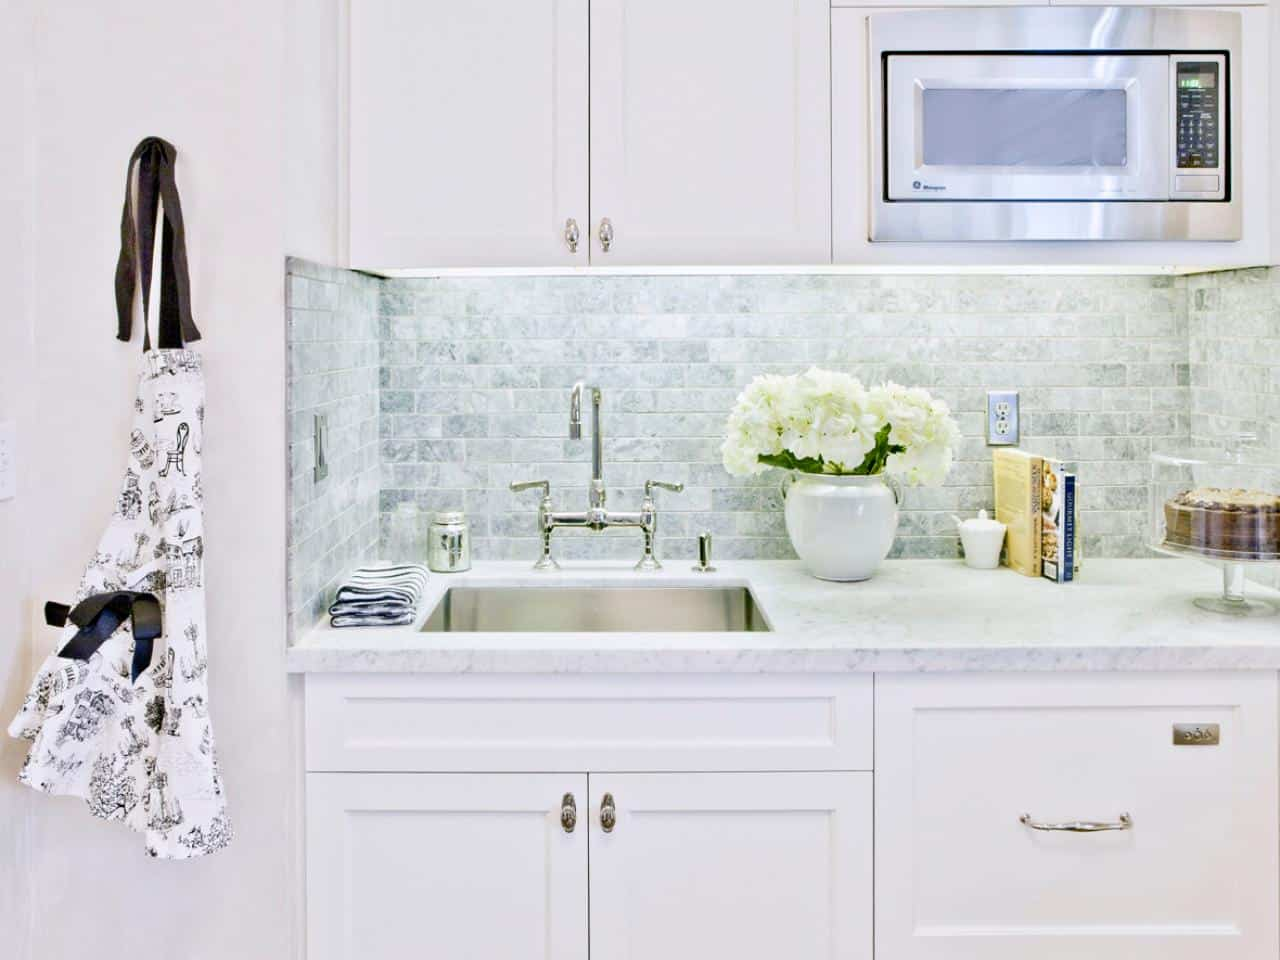 Take your tile backsplash one step further and create a simple yet subtle design that may be hard to see from afar but will catch your attention.